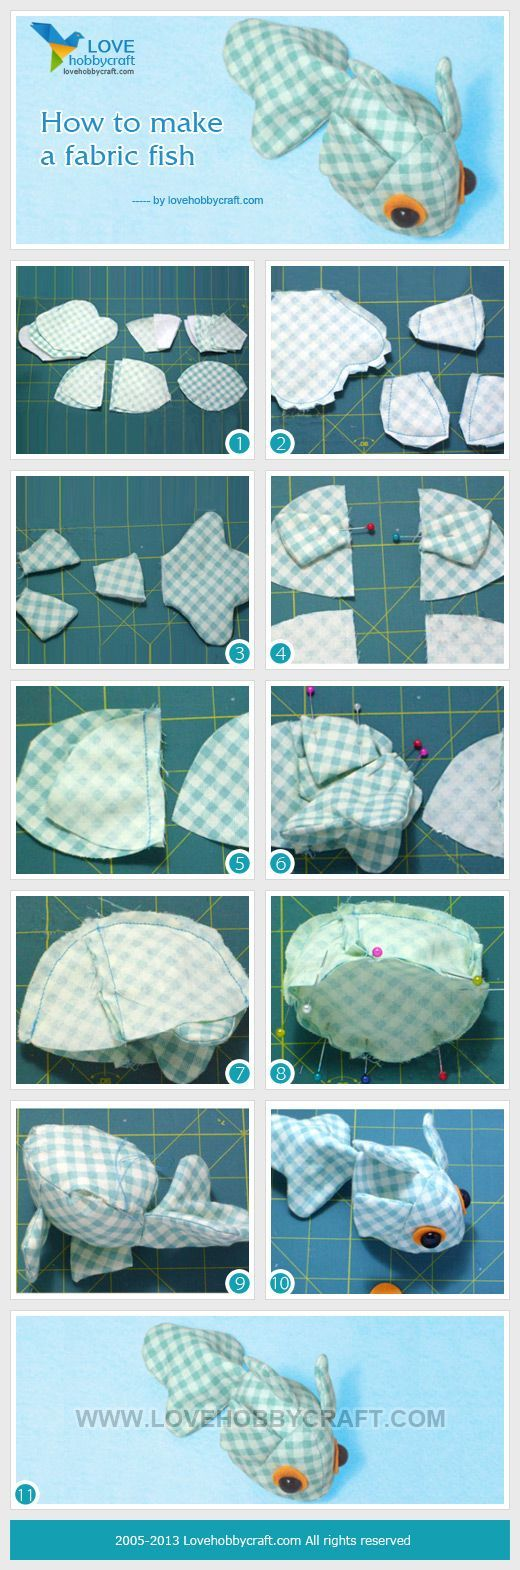 How to make a fabric fish...you would have to draw the templates: